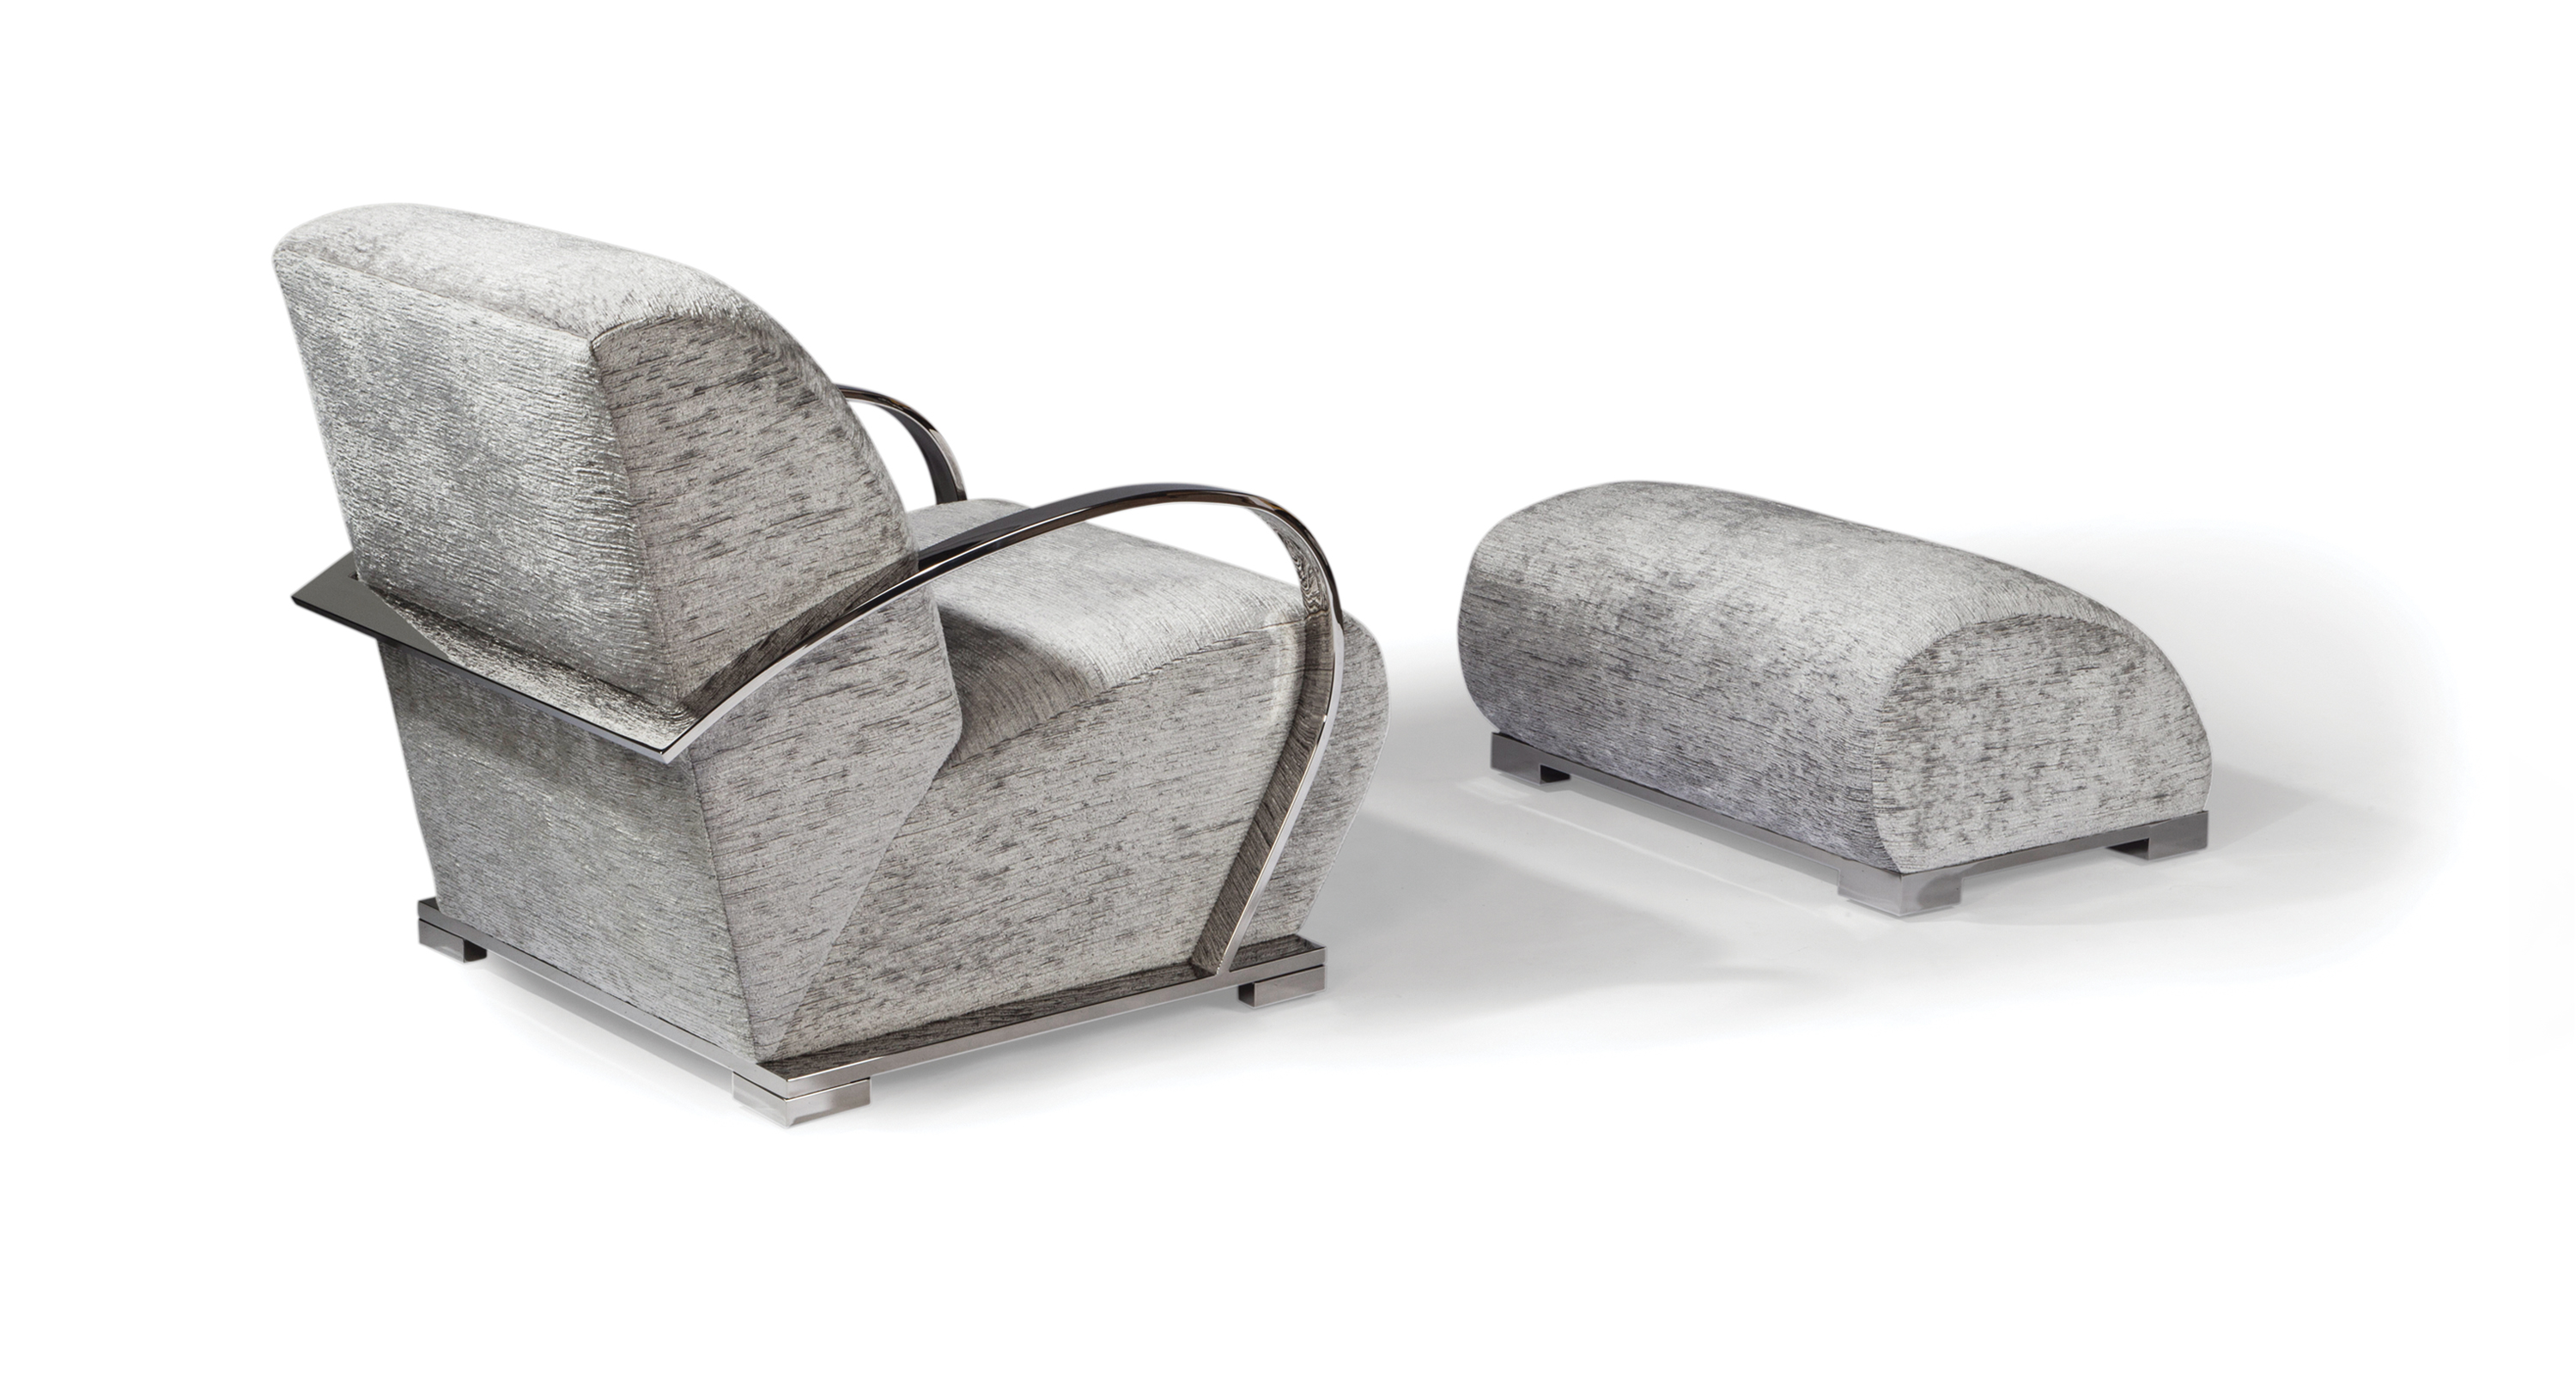 Streamliner Chair and Ottoman